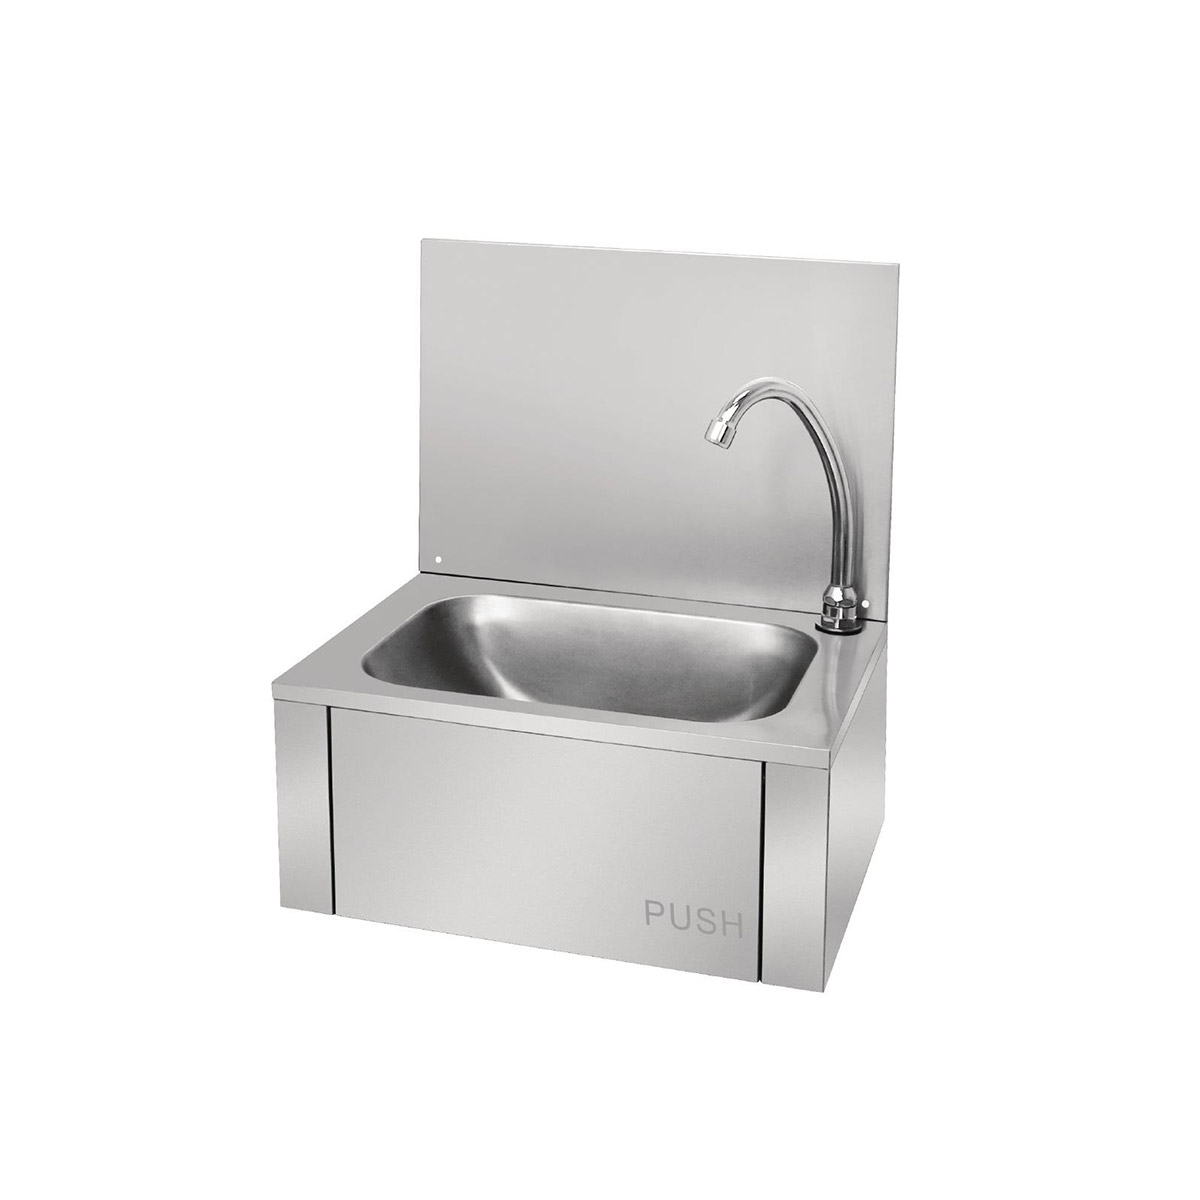 Vogue Stainless Steel Knee Operated Sink